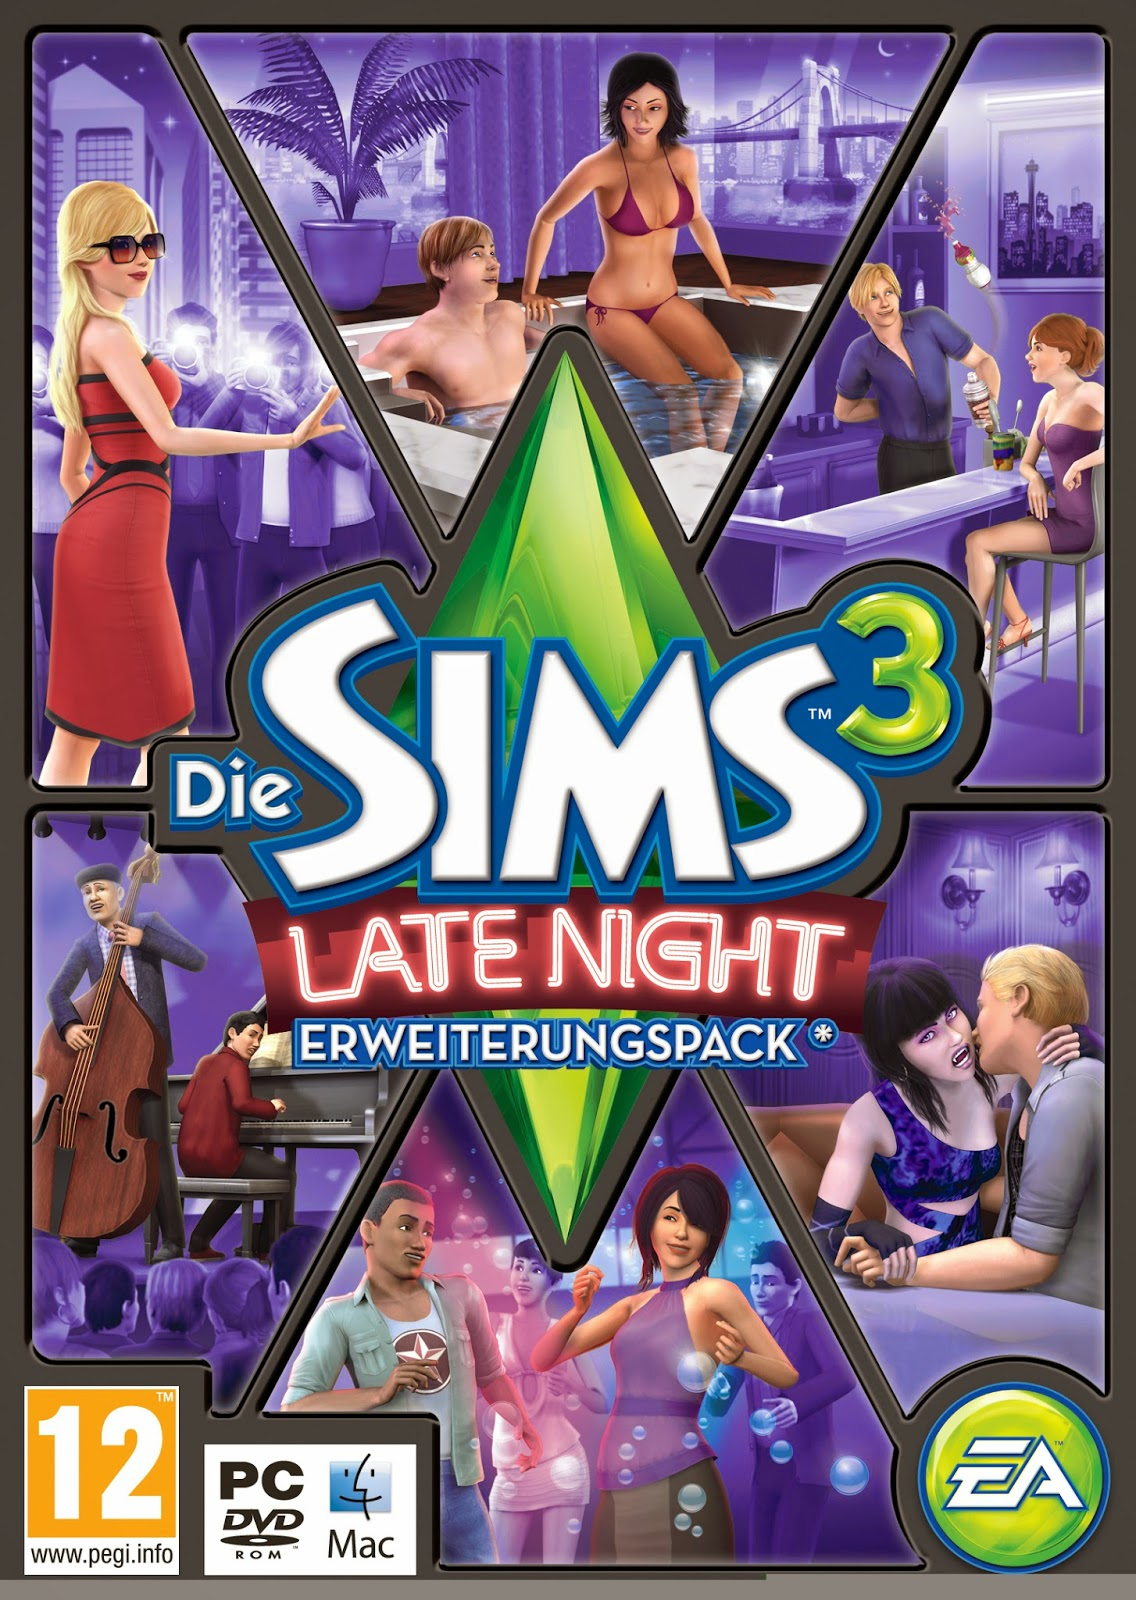 http://www.amazon.de/Die-Sims-Late-Night-Add/dp/B003X144WI/ref=sr_1_1?ie=UTF8&qid=1405948231&sr=8-1&keywords=Die+Sims+3+-+Late+Night